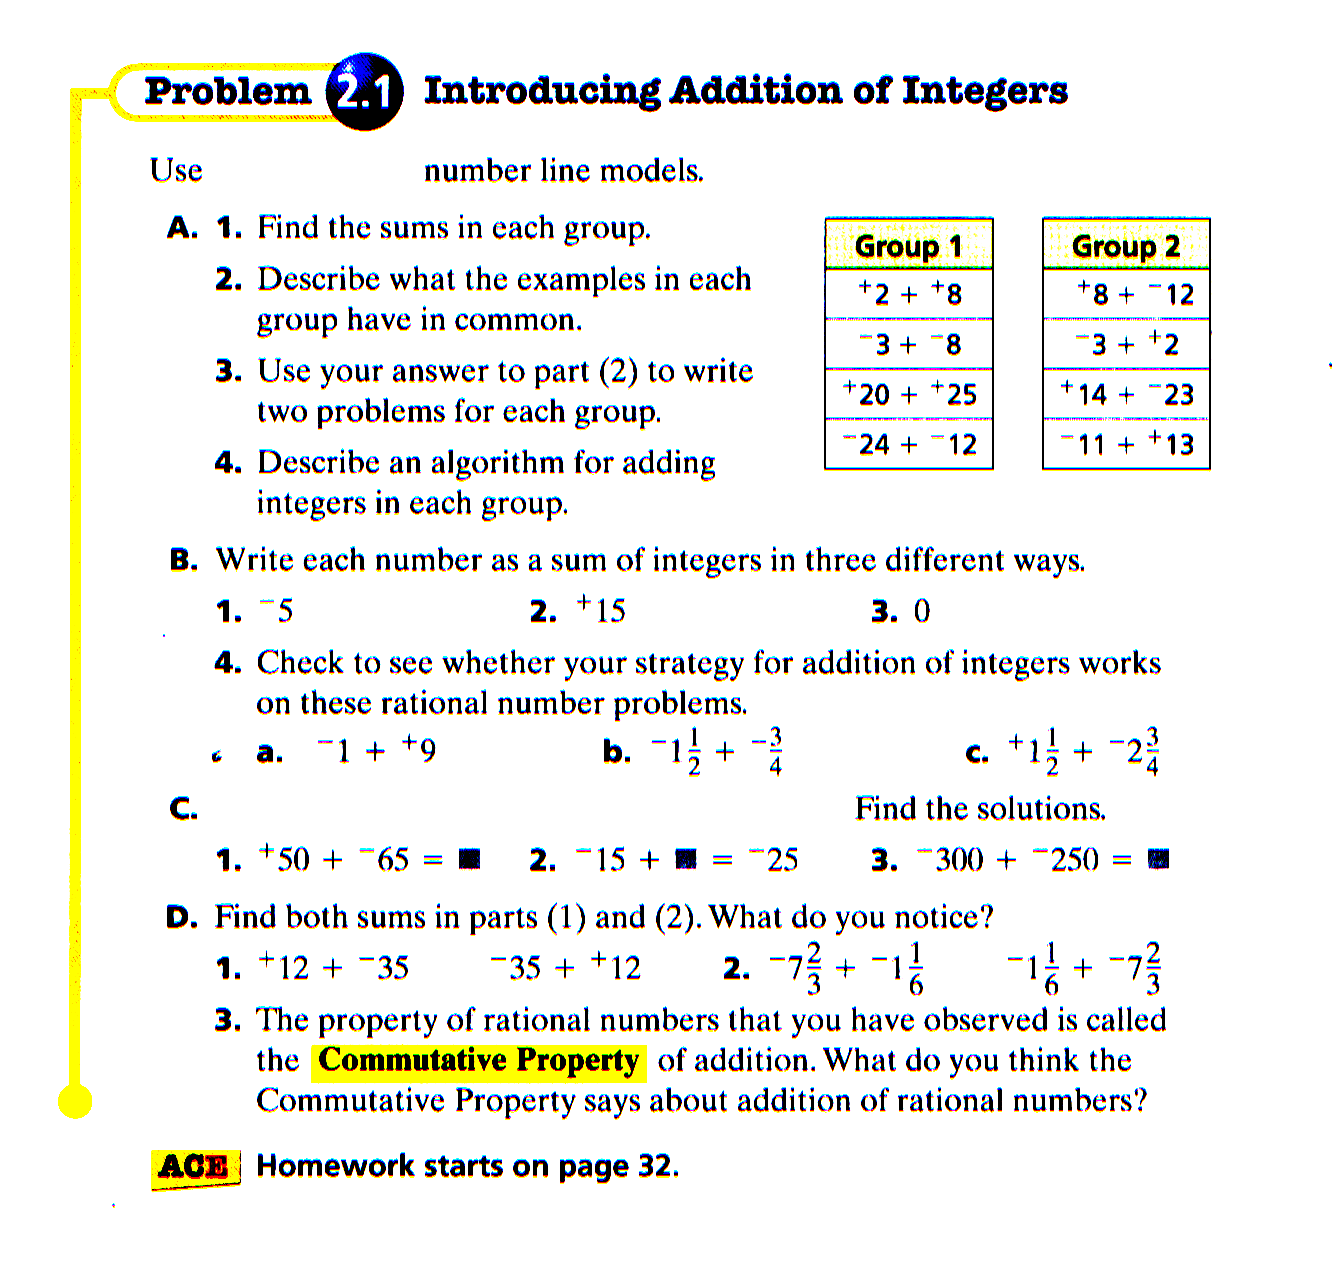 Mr. Dreyer's--sob--former Classes at the Edwards education, learning, worksheets for teachers, math worksheets, and free worksheets Integer Worksheet Grade 7 1277 x 1333